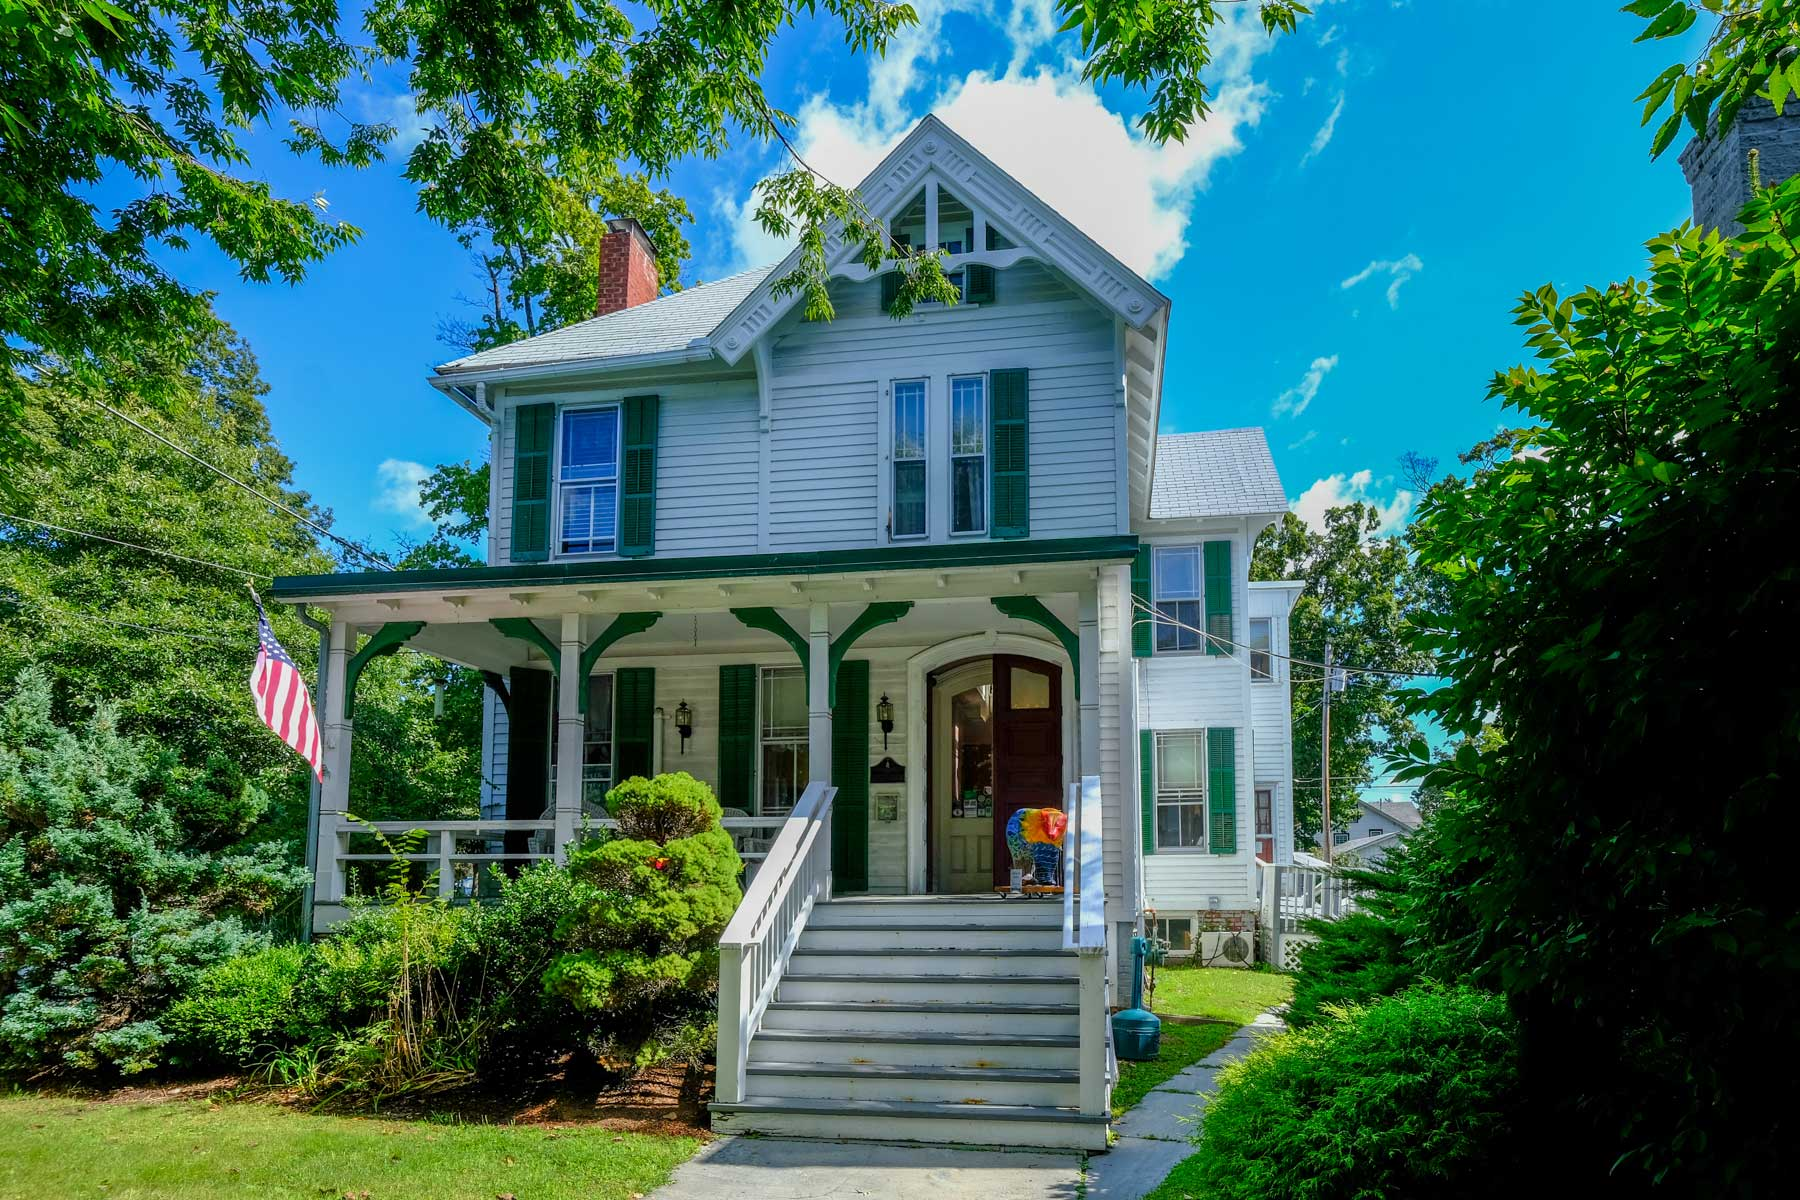 historic Victorian house with green shutters